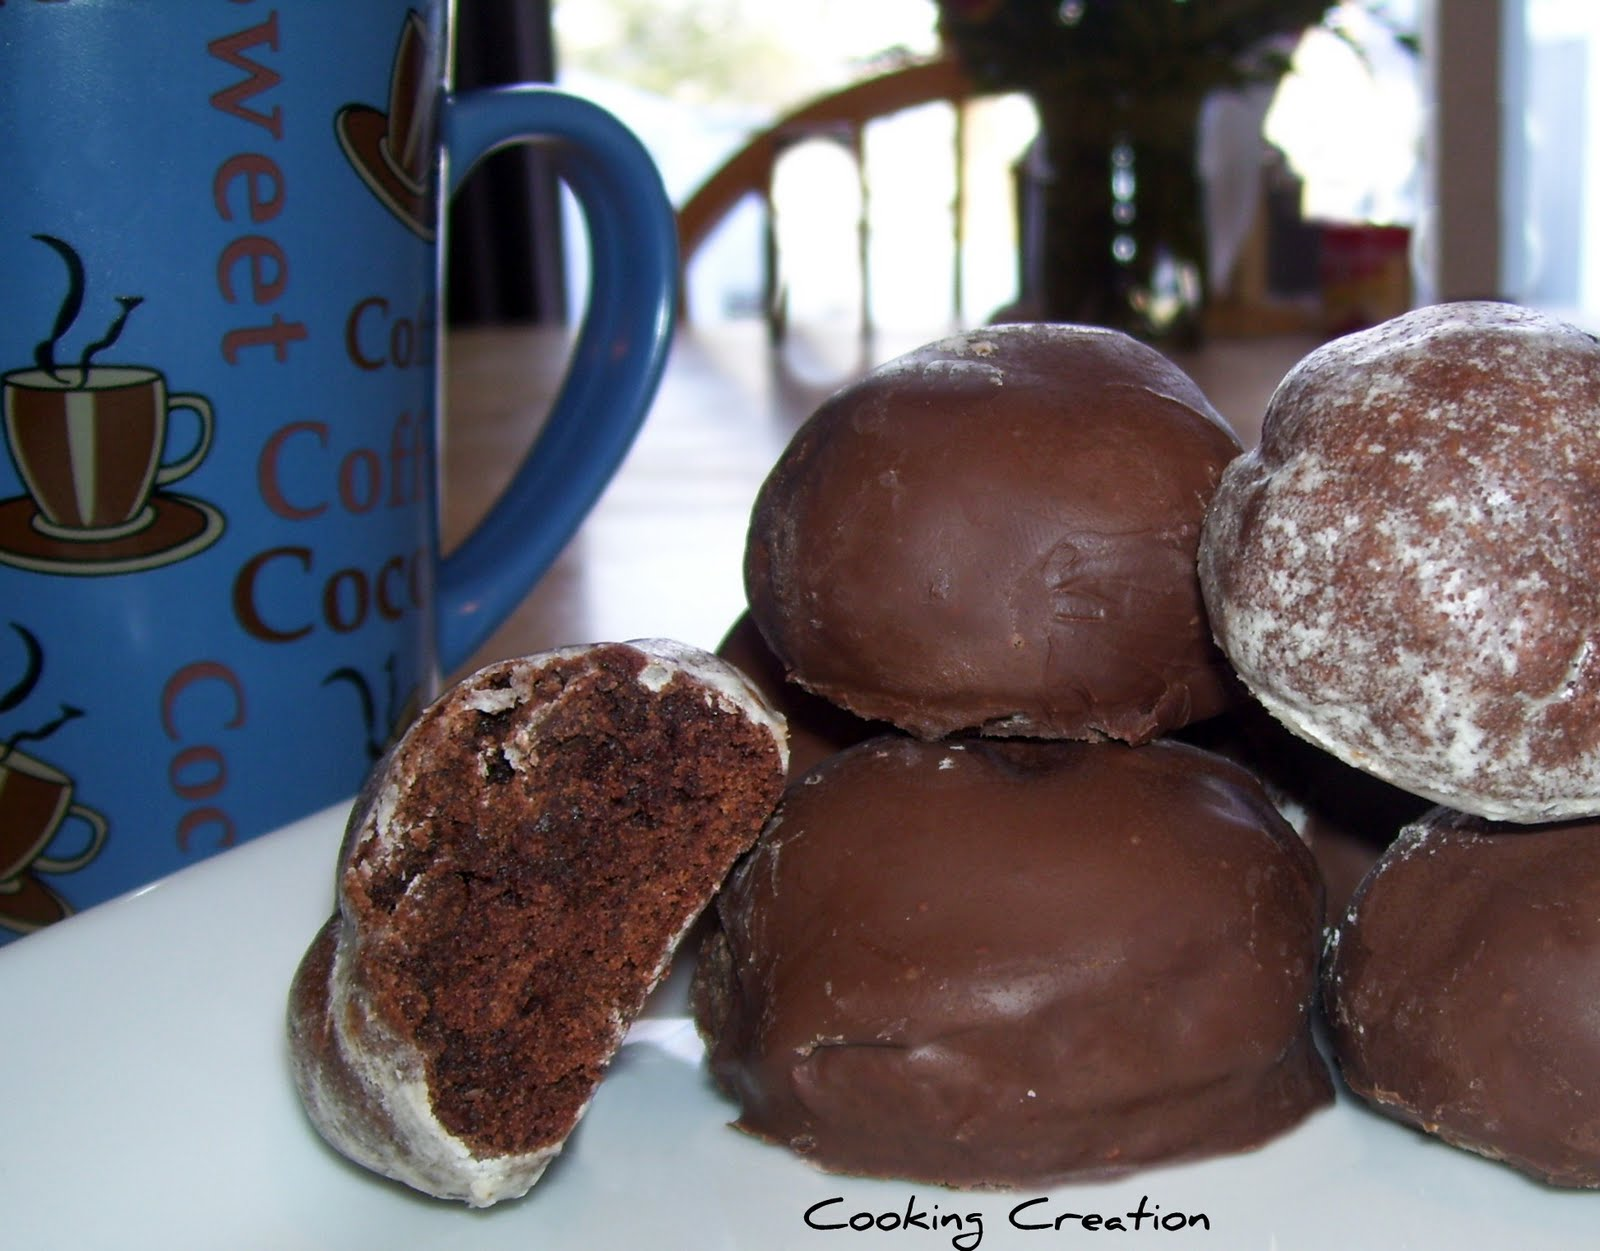 Cooking Creation: Chocolate Doughnut Holes in Vanilla Glaze